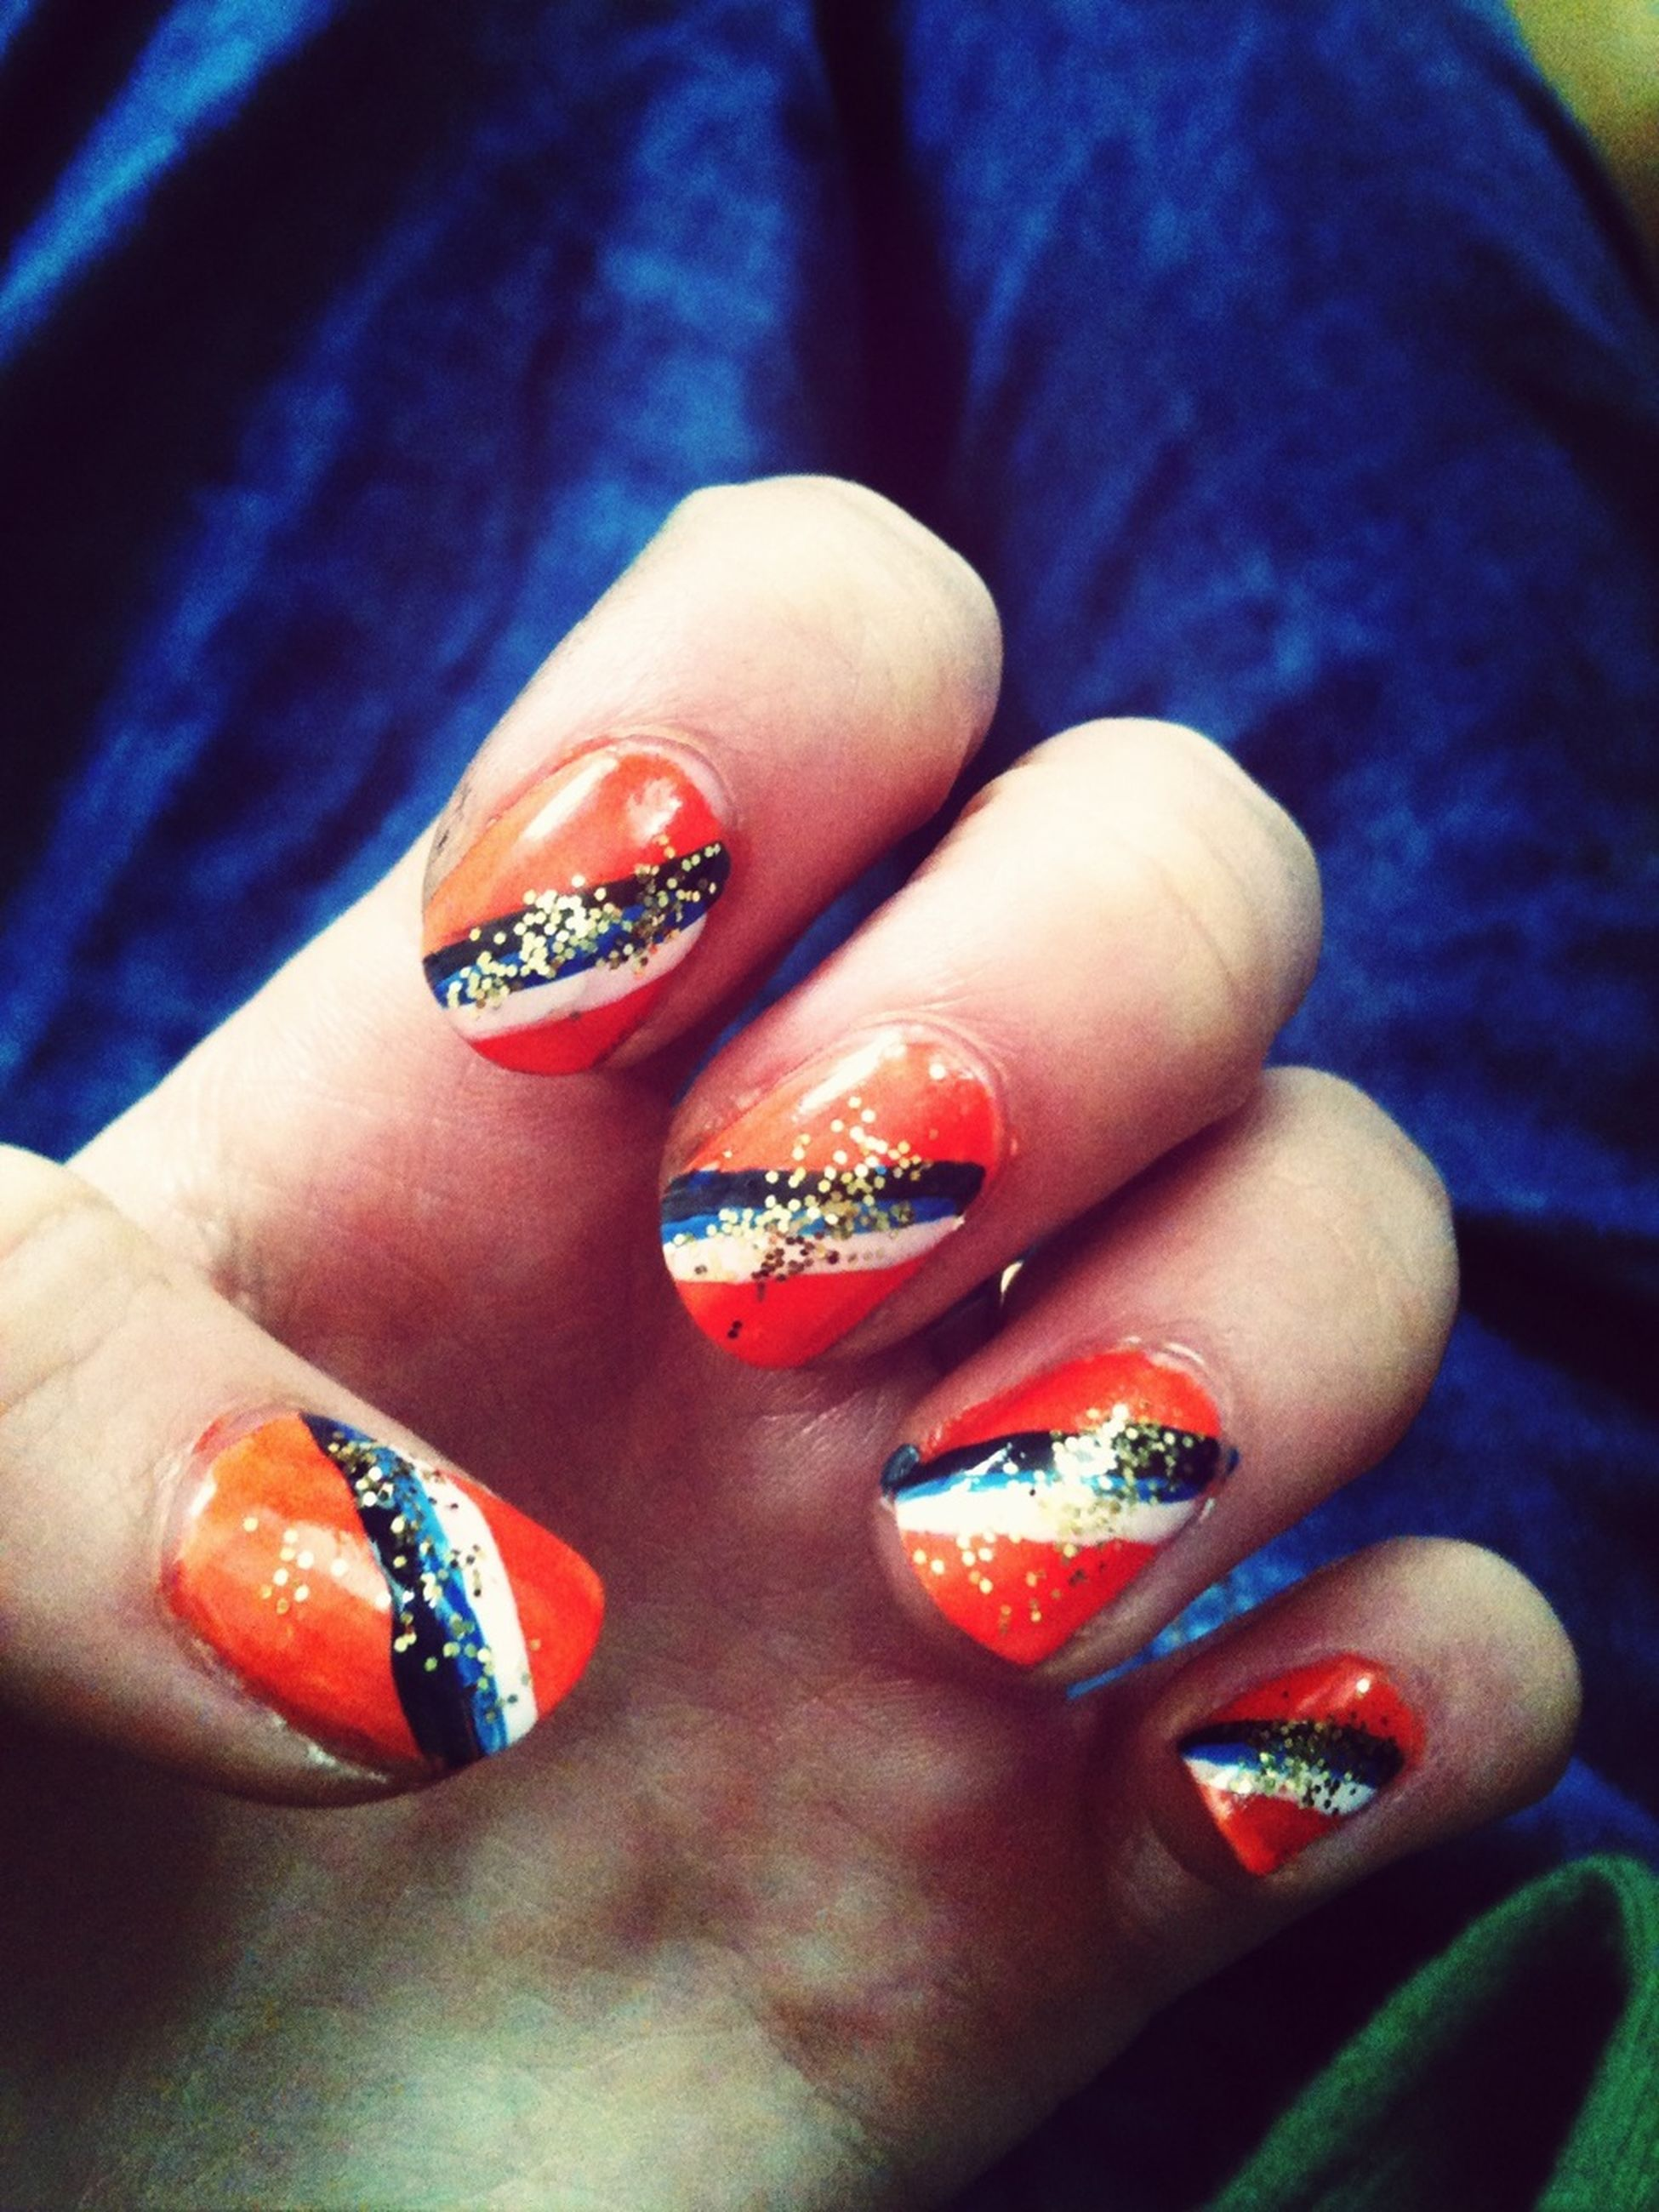 person, part of, close-up, human finger, indoors, holding, jewelry, ring, showing, cropped, unrecognizable person, fashion, high angle view, nail polish, creativity, lifestyles, multi colored